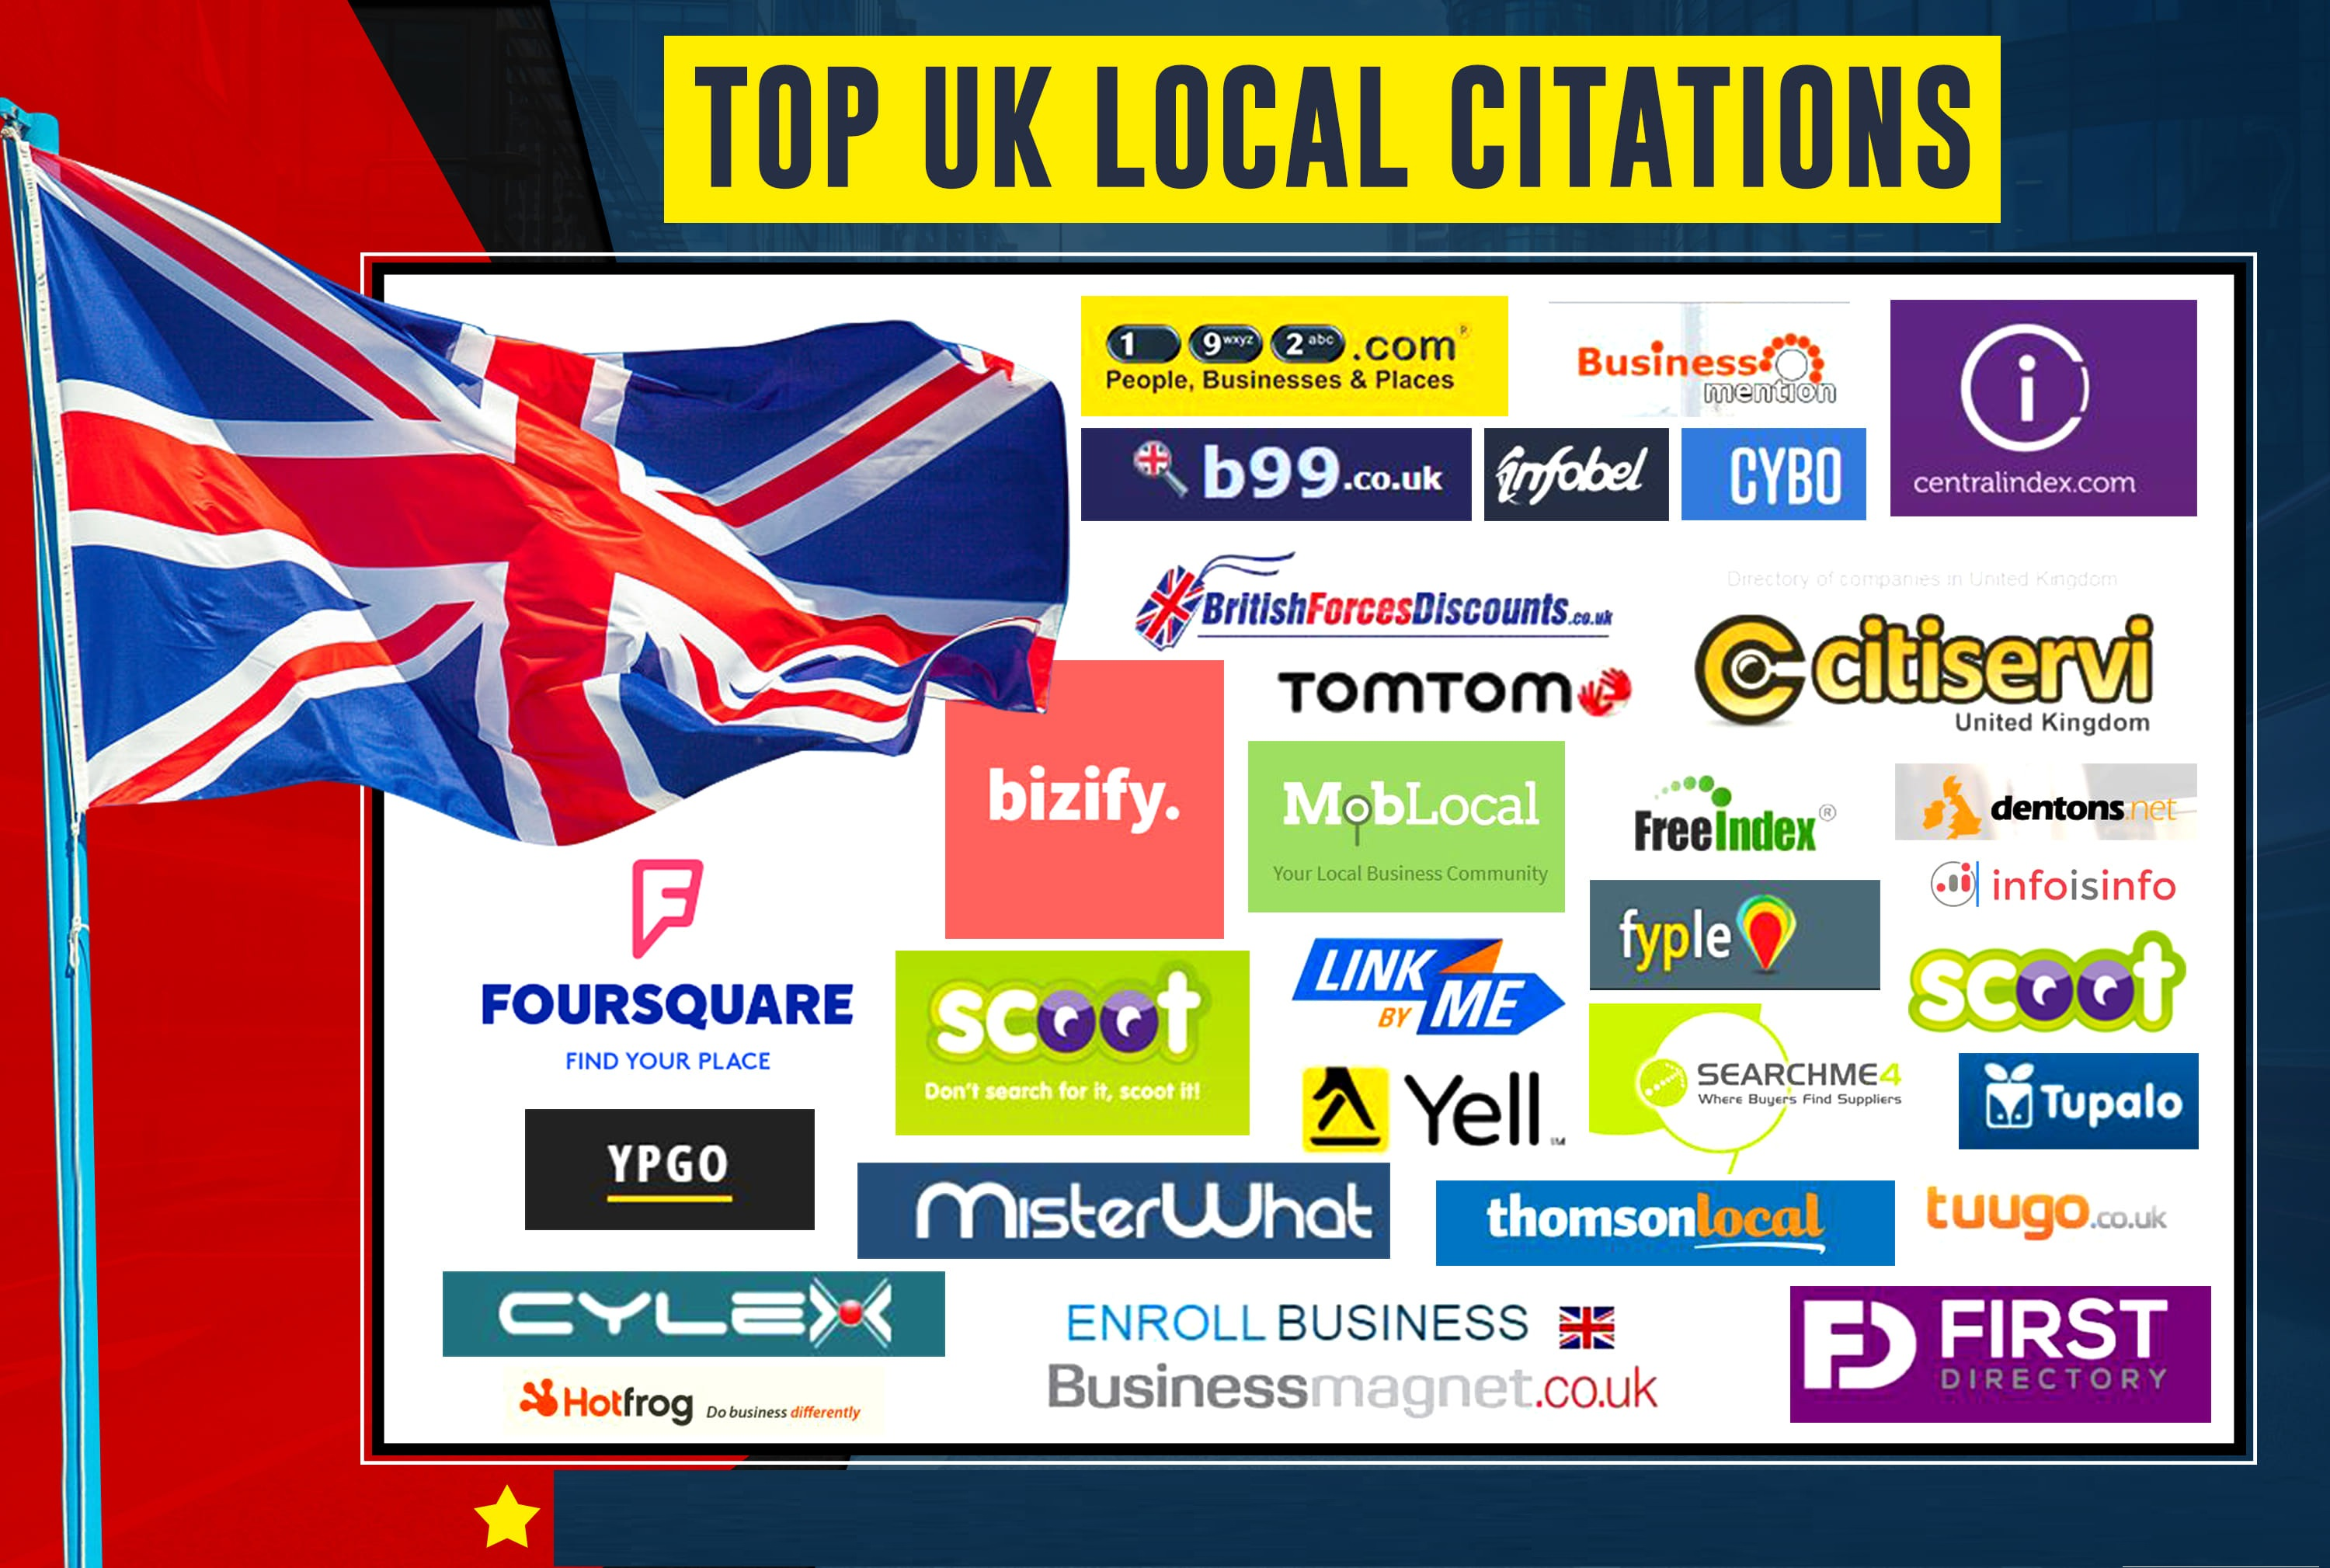 we will create 30 top UK local citations for your business